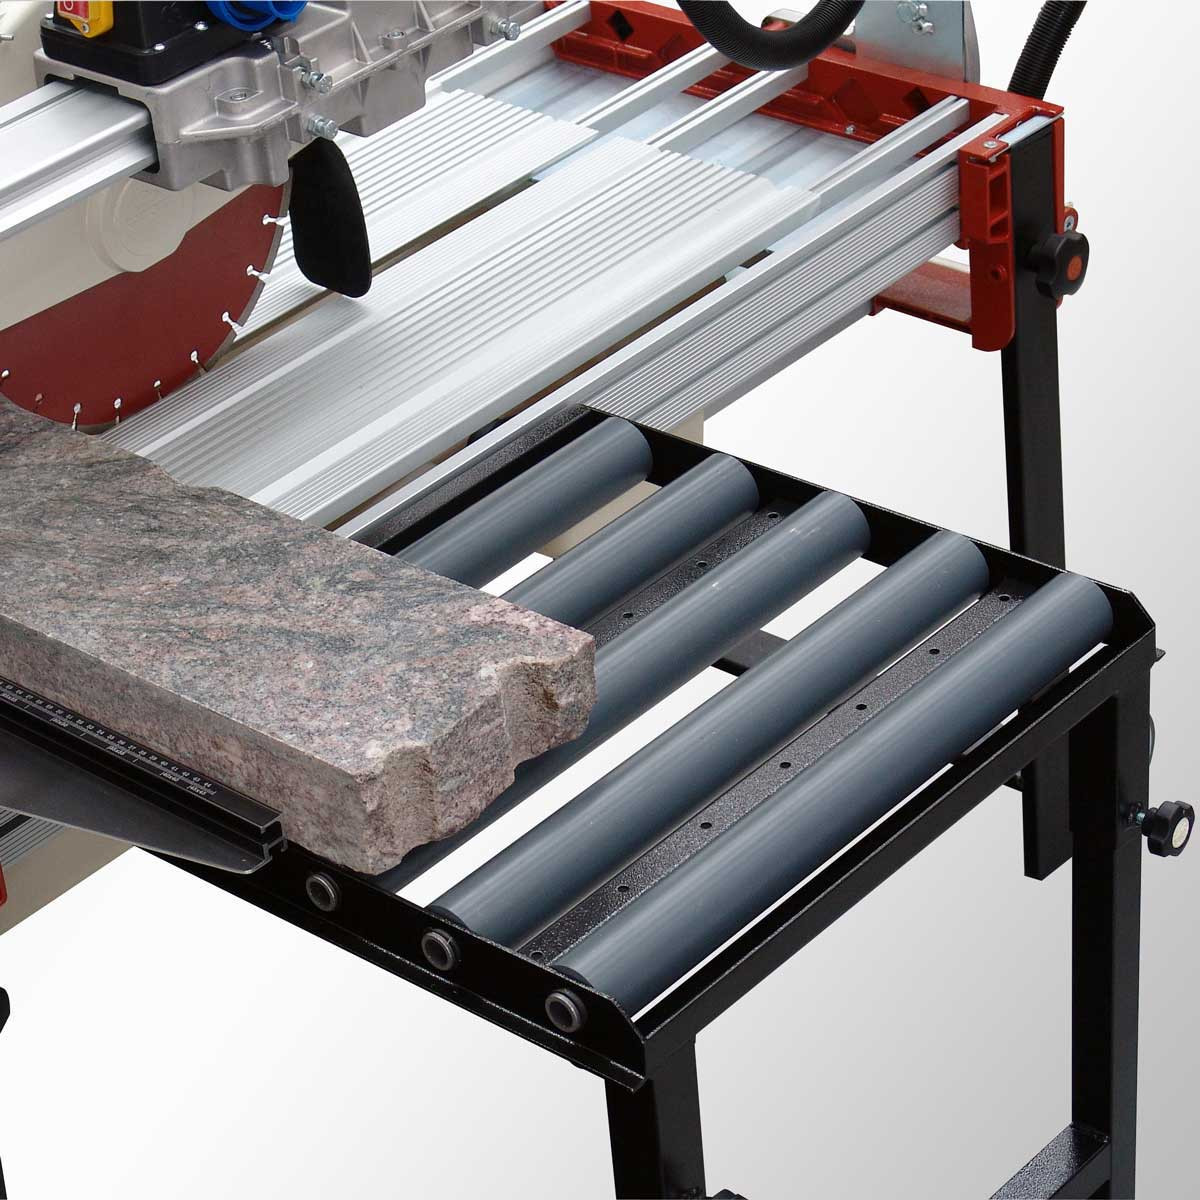 Raimondi Zipper Advanced Rail Saw optional rolling extension table